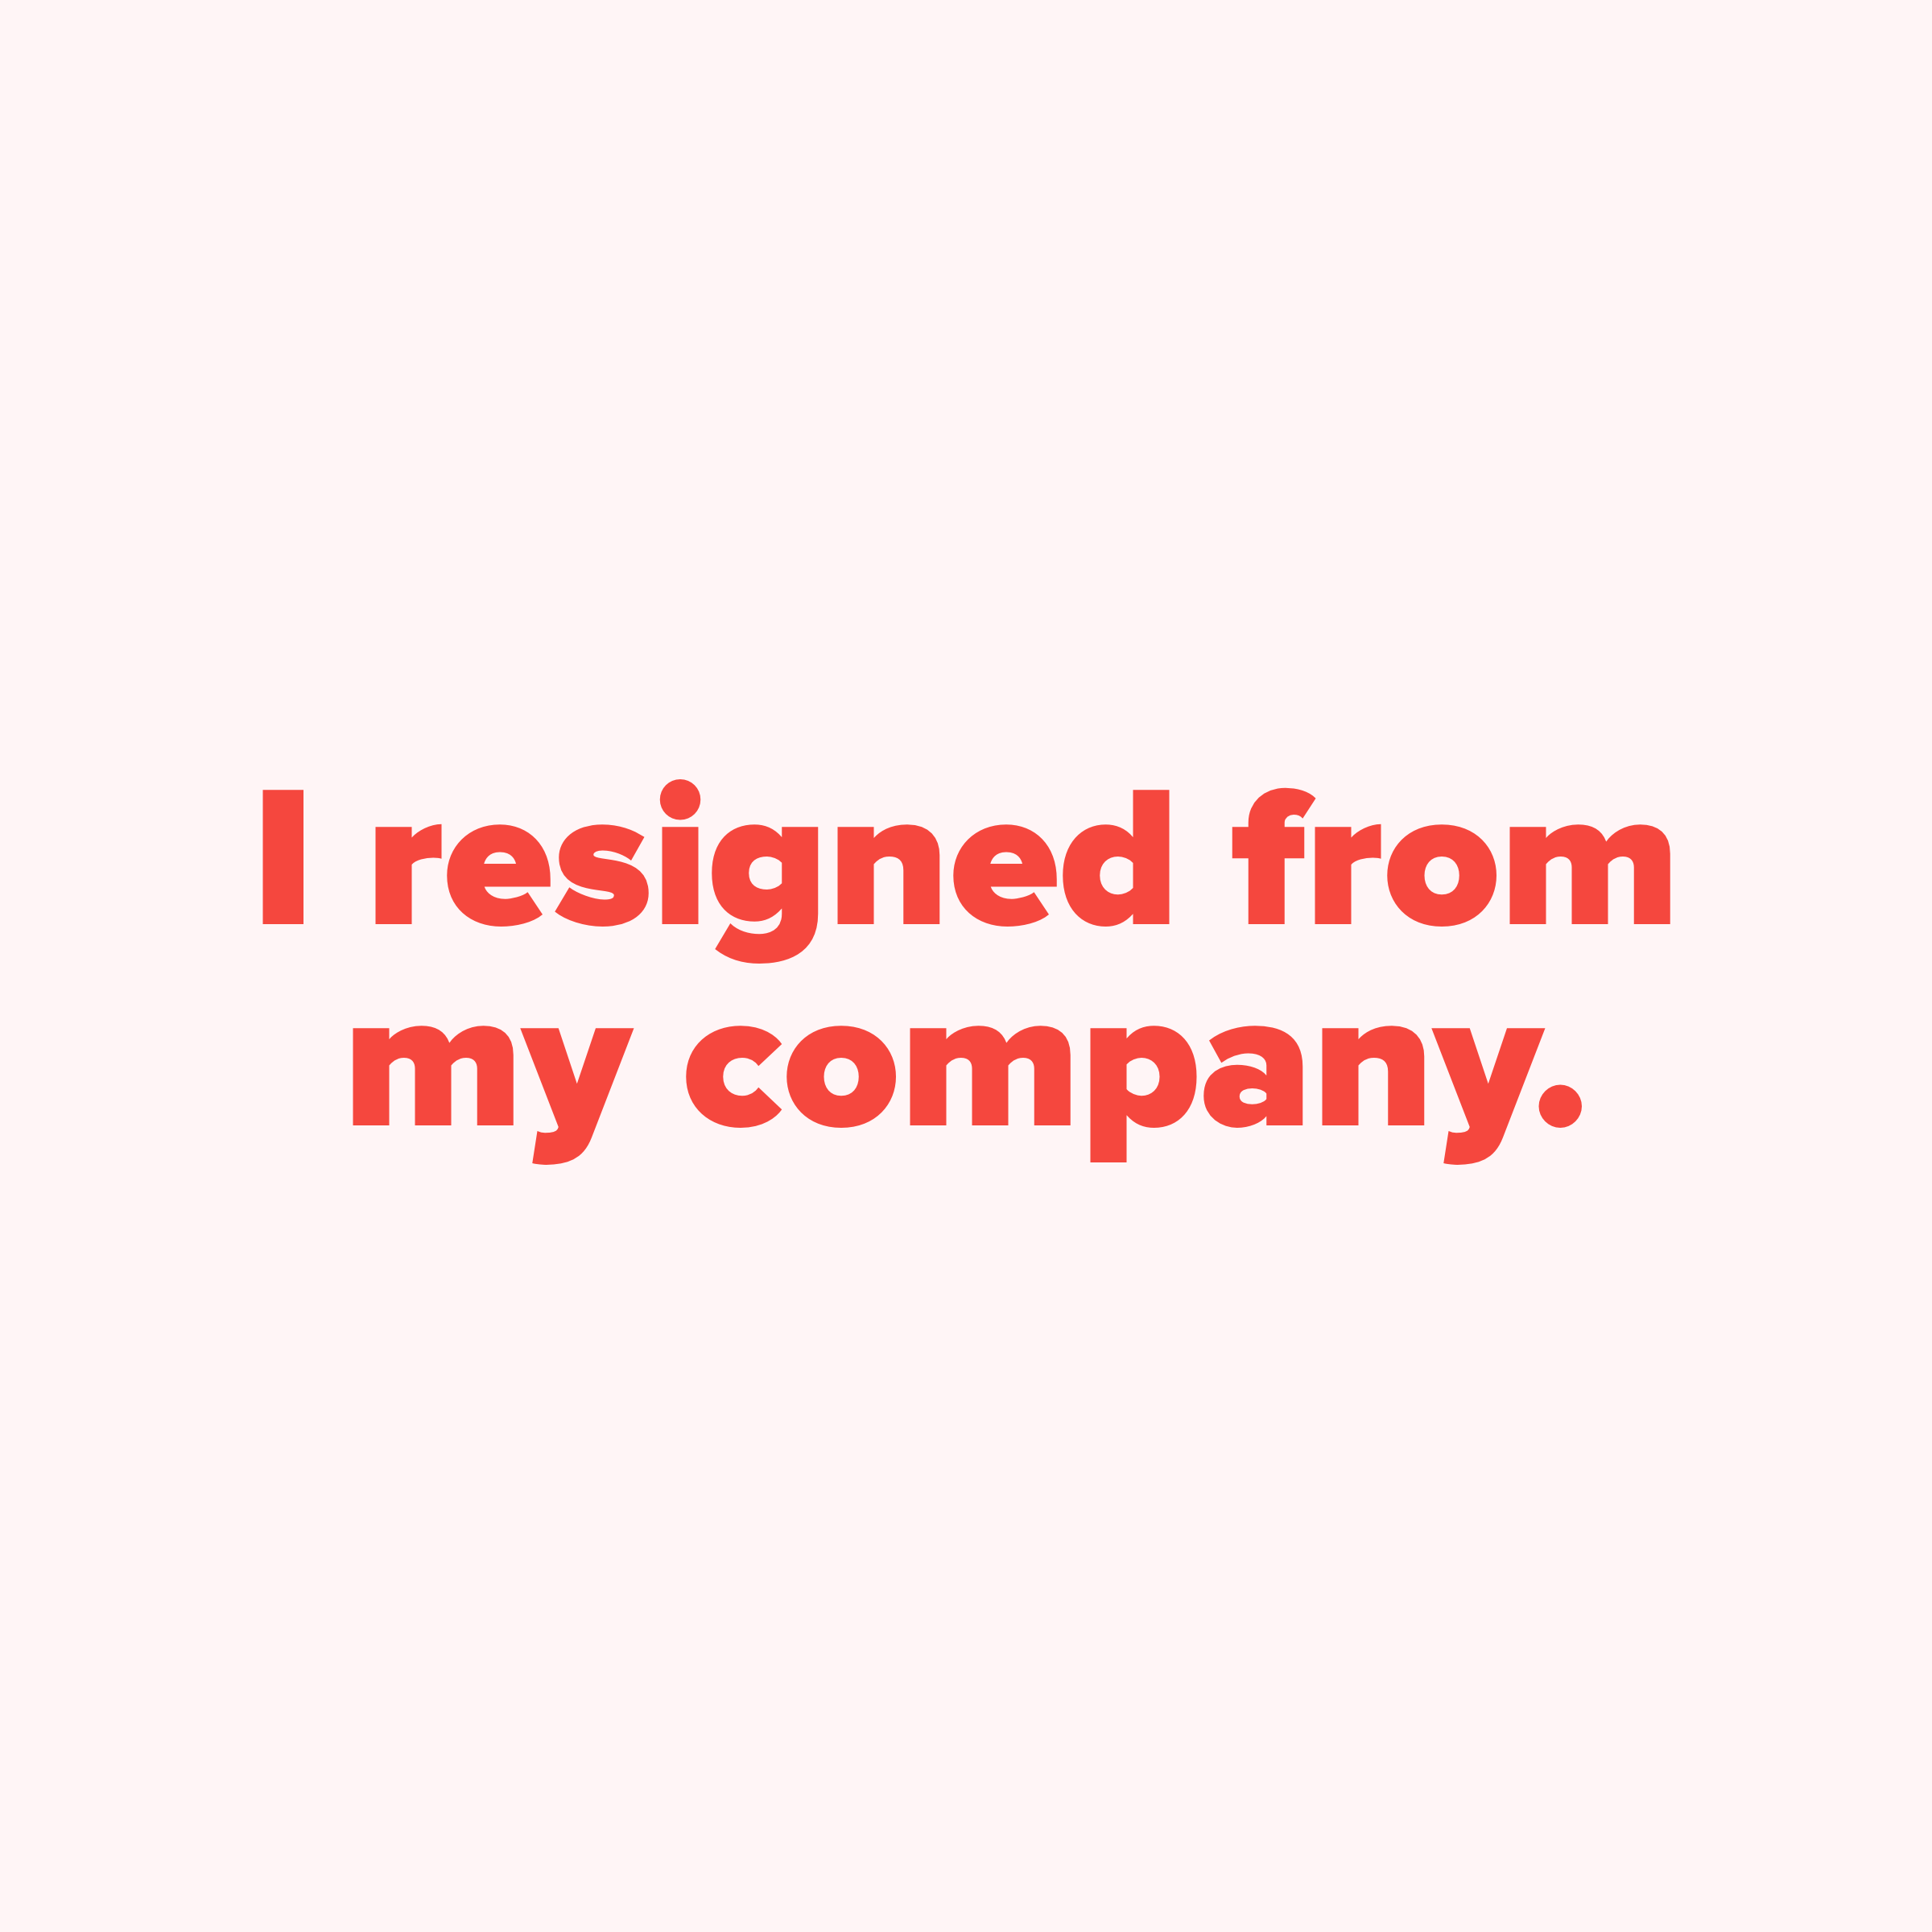 resigned.png